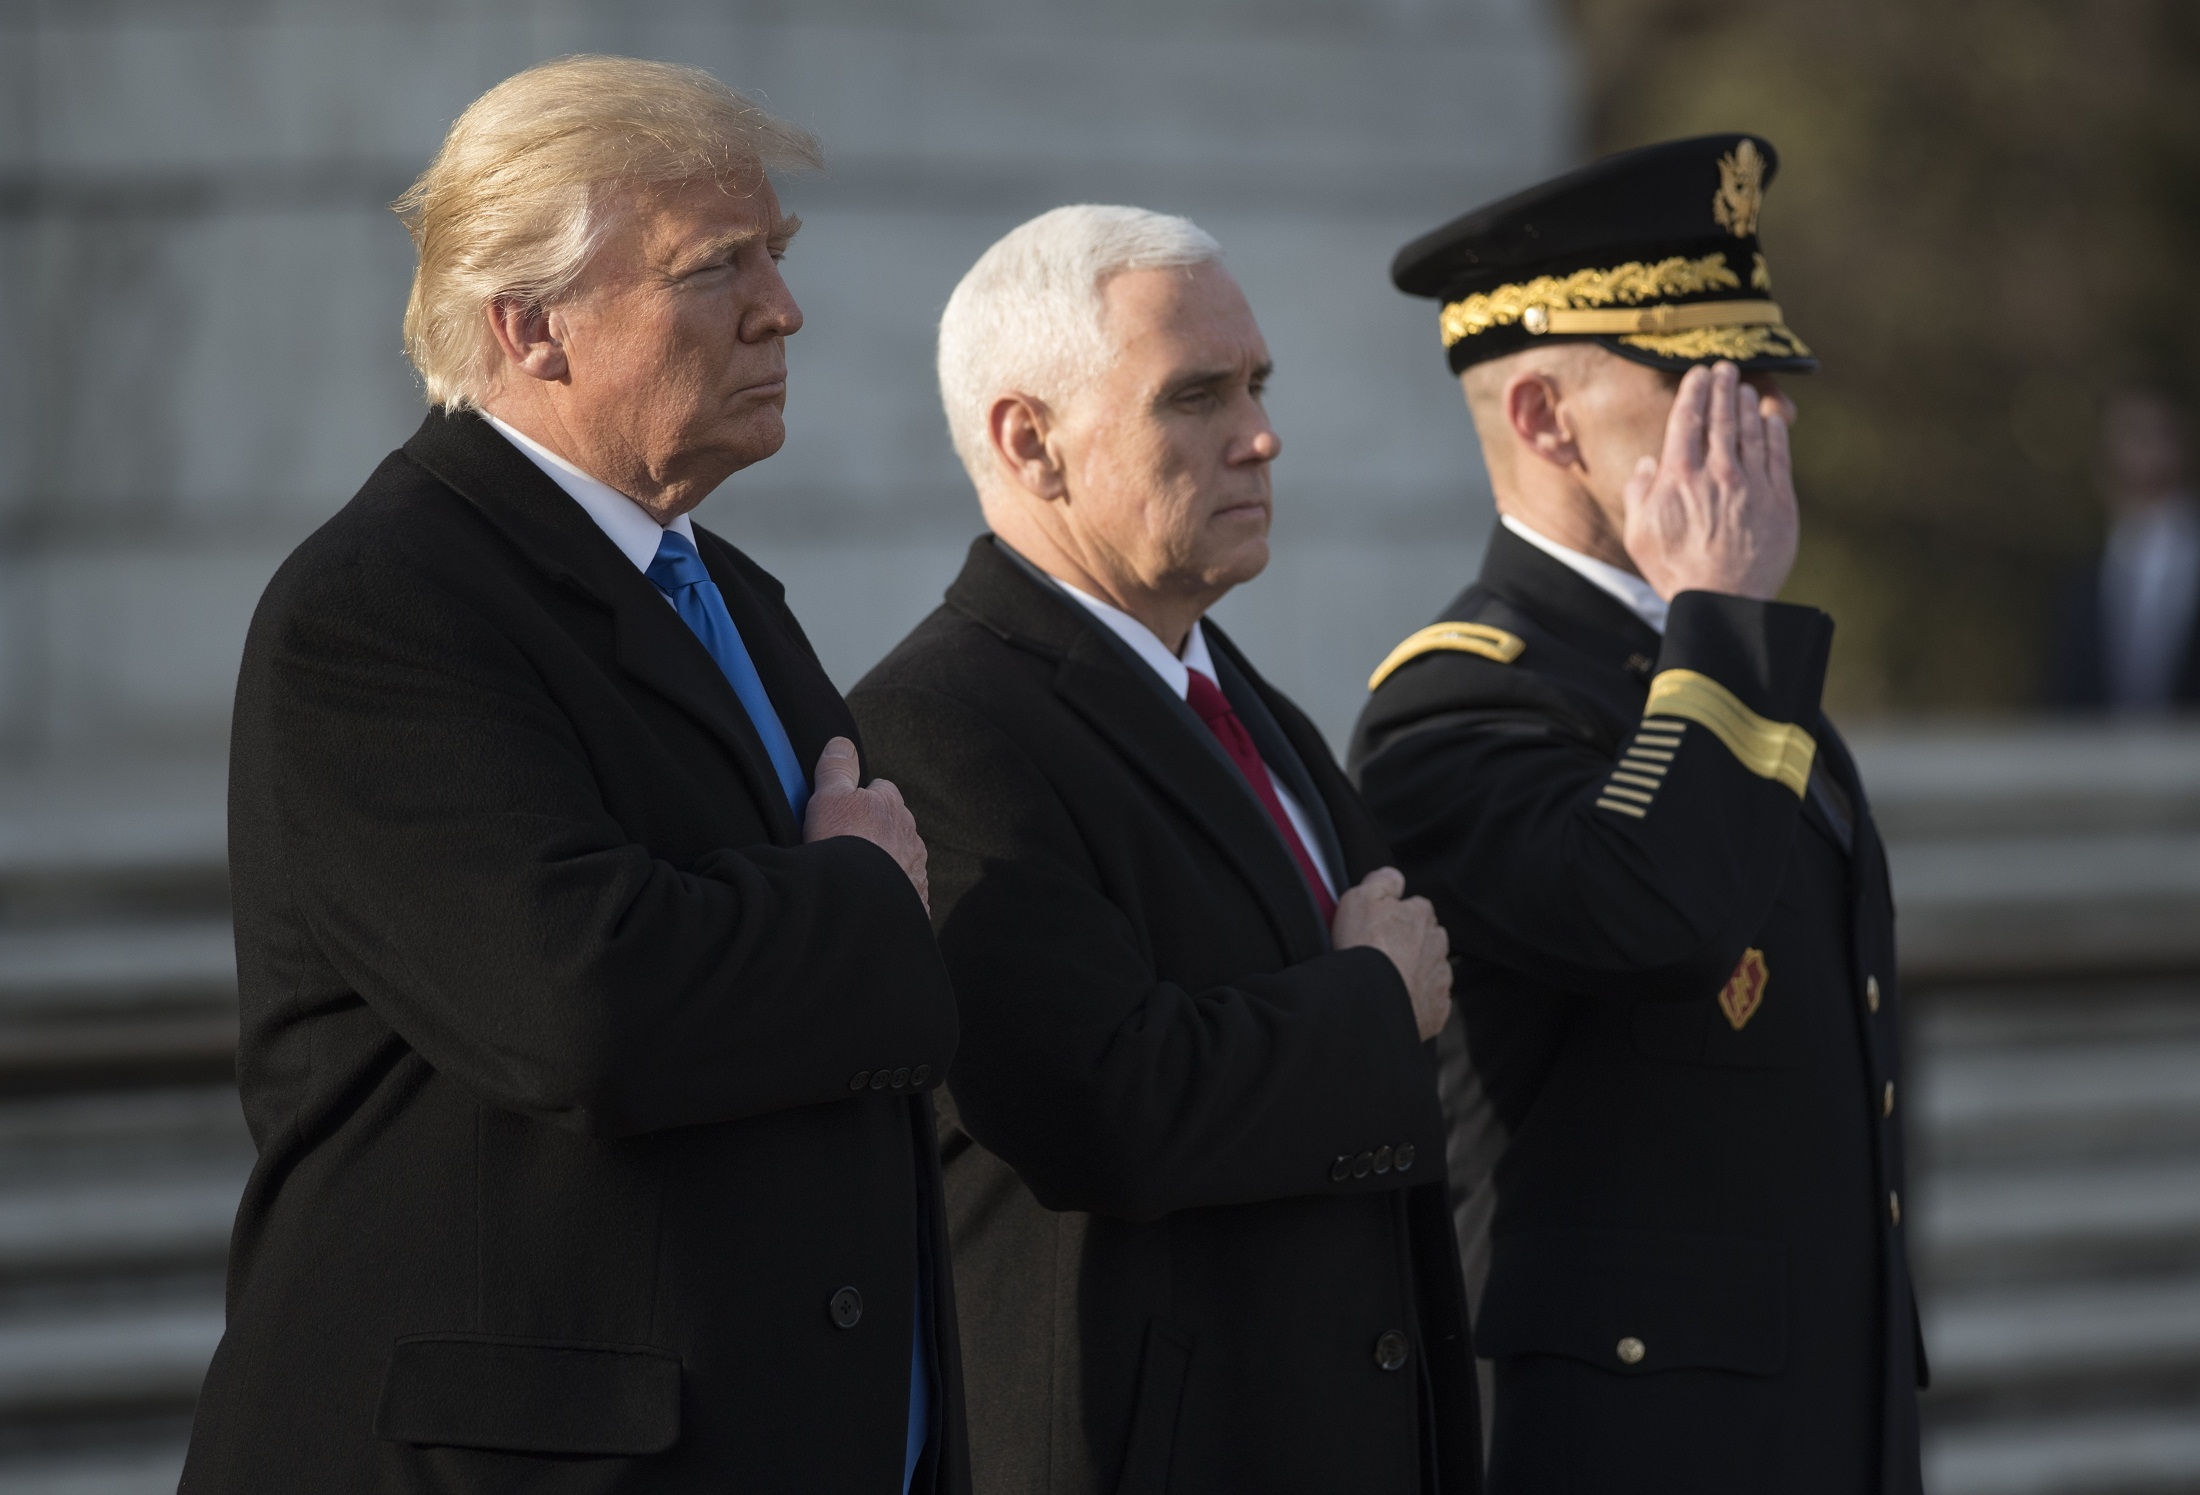 US President-elect Donald Trump and Vice President-elect Mike Pence take part in a wreath-laying ceremony at Arlington National Cemetery in Arlington, Virginia on January 19, 2017. / AFP PHOTO / Mandel Ngan